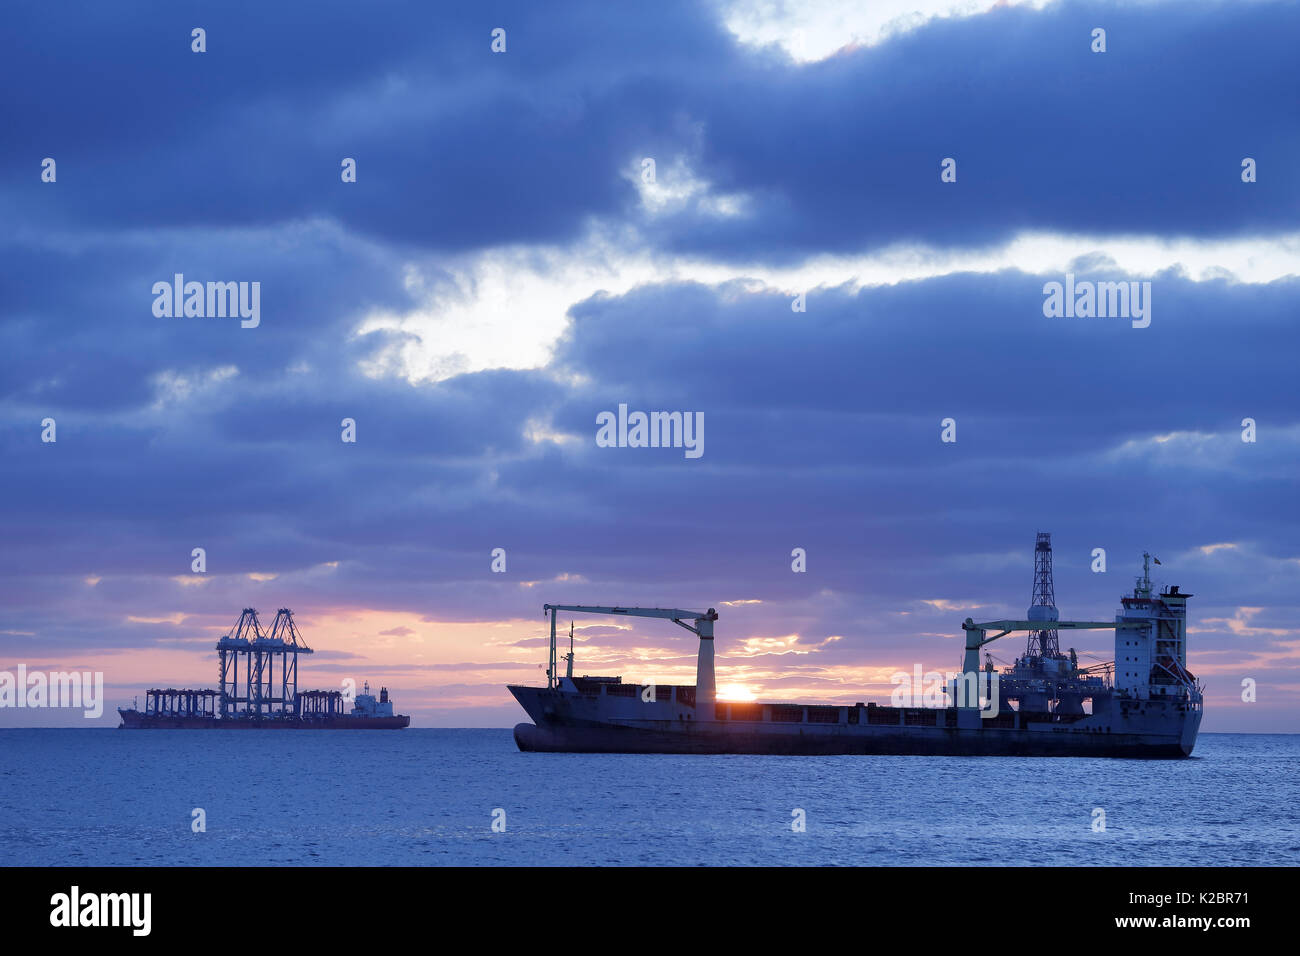 Tankers out at sea off Gran Canaria, Atlantic Ocean. All non-editorial uses must be cleared individually. - Stock Image